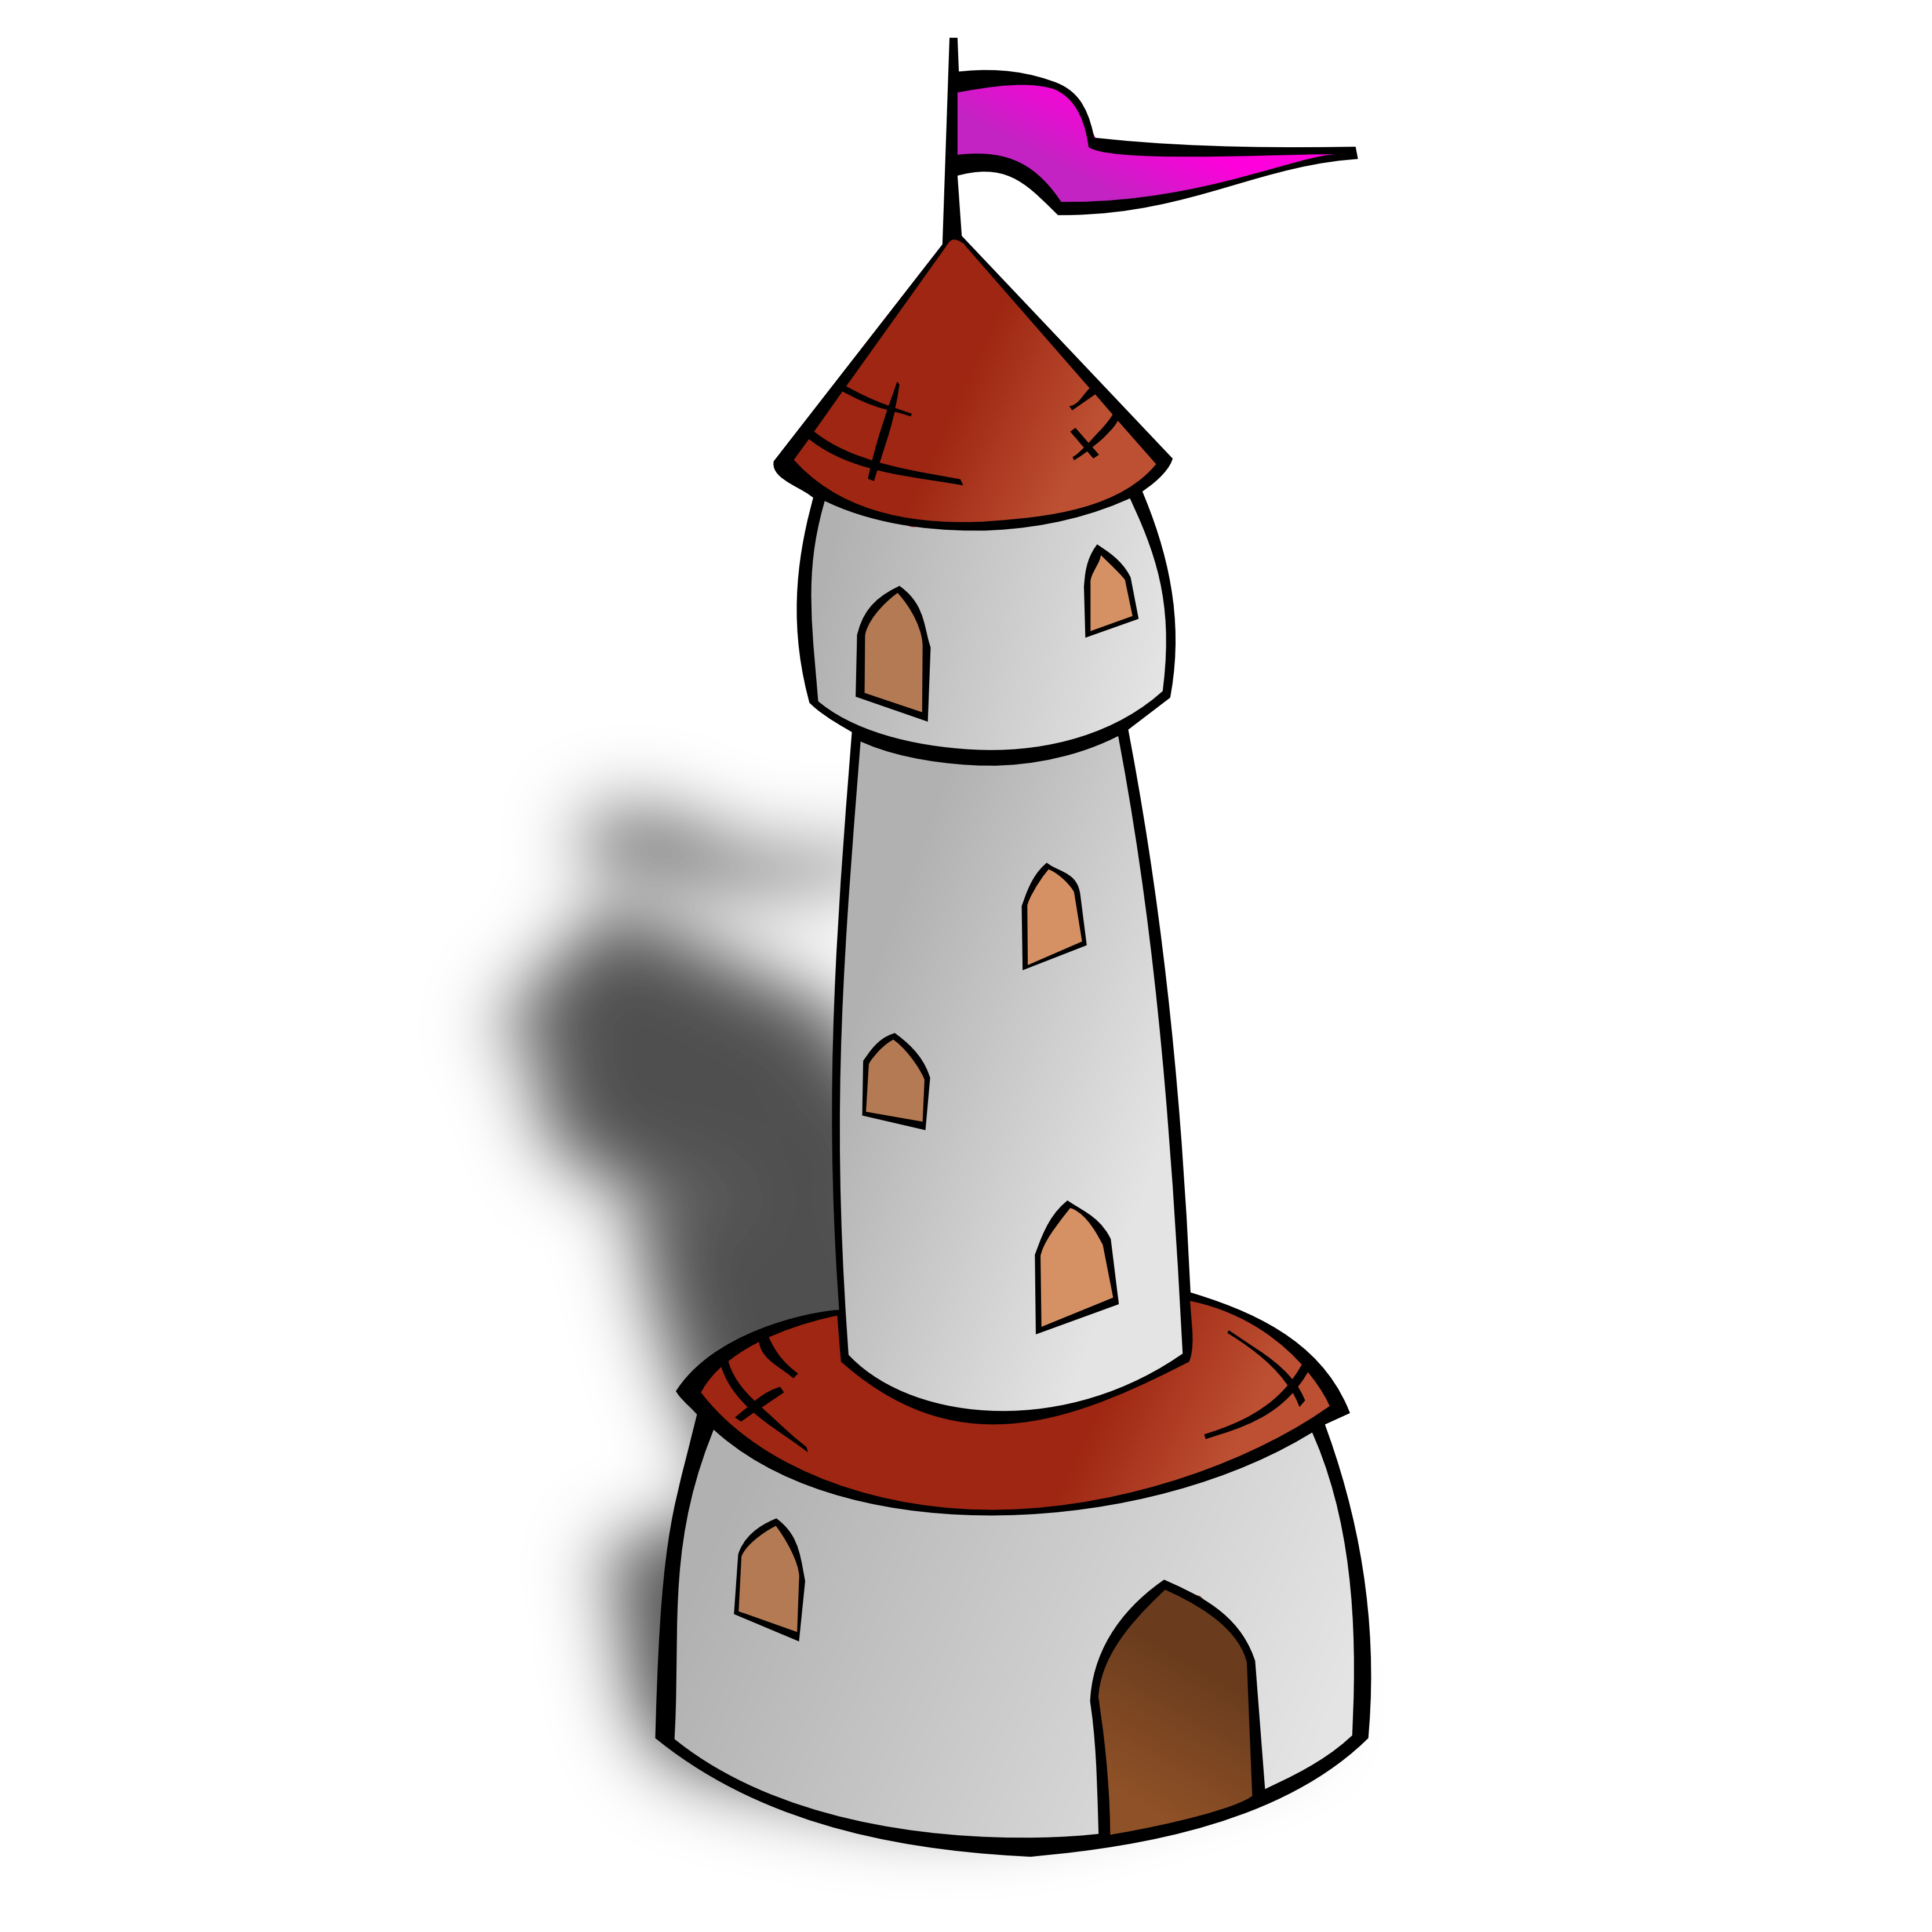 Tower clipart #13, Download drawings